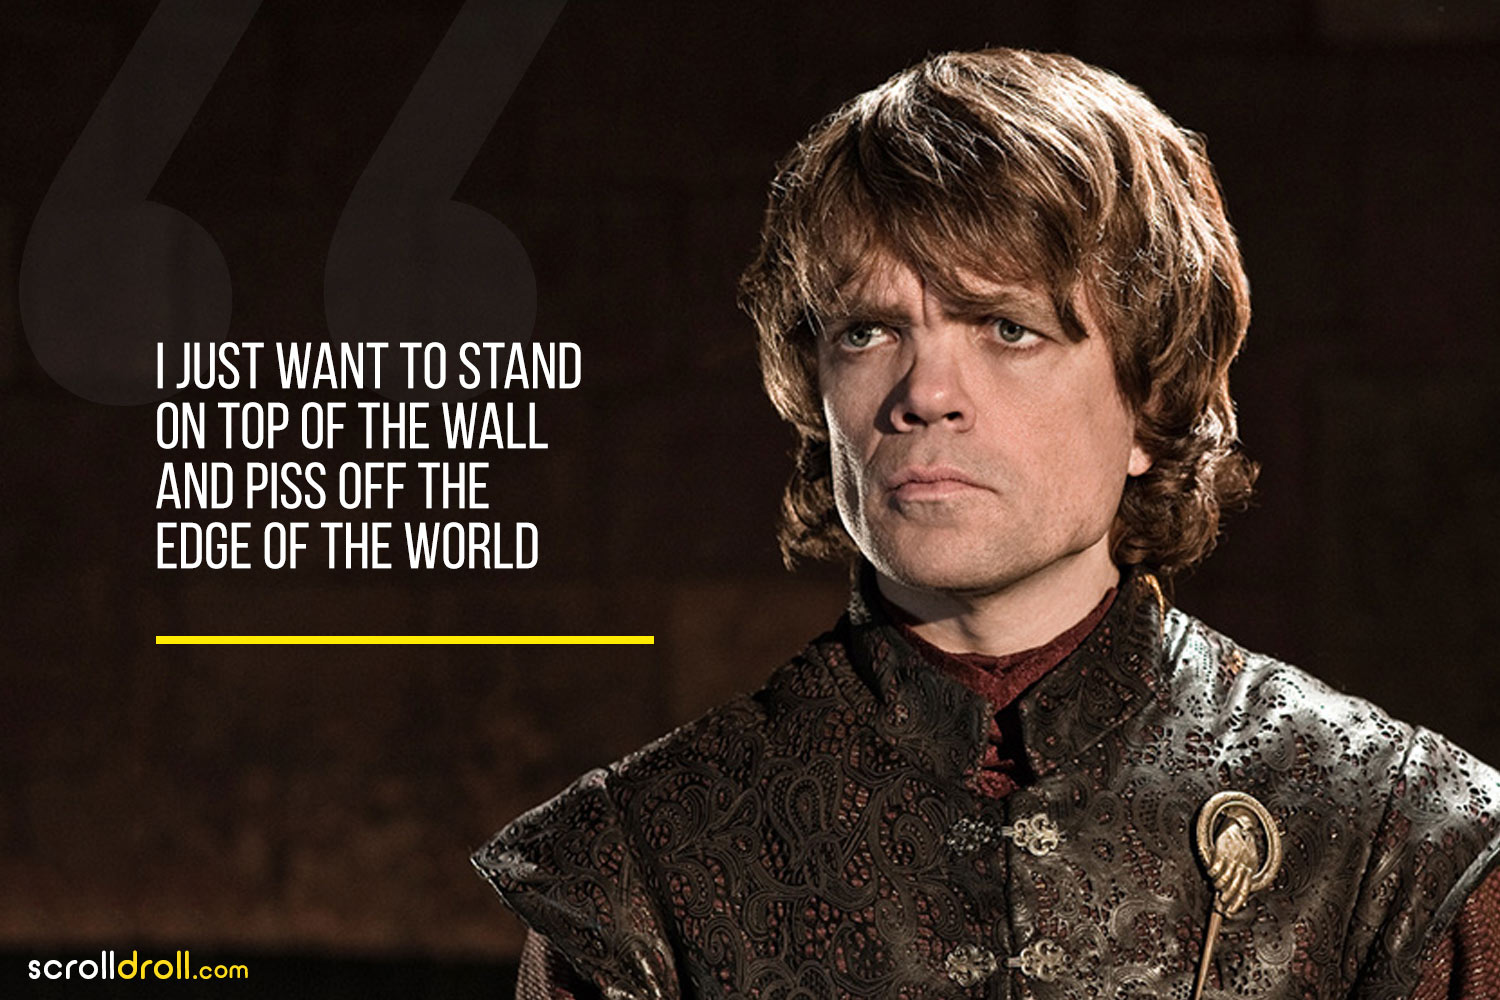 Tyrion-I just want to stand on top of the wall and piss off the edge of the world